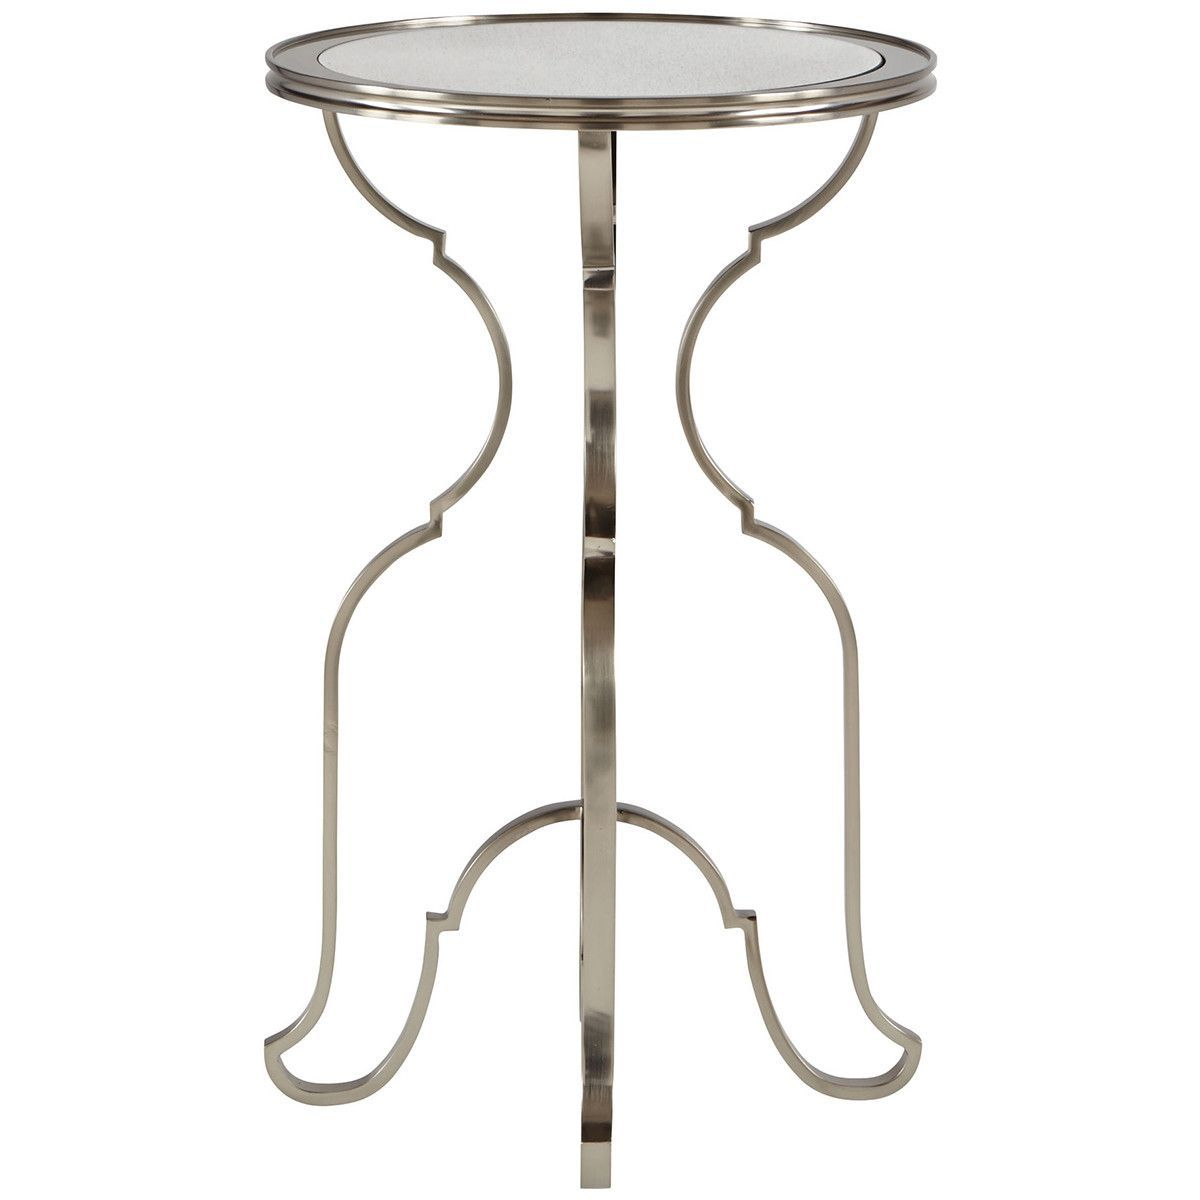 bernhardt occasional laurel round metal accent table metals clarissa windham door cabinet gray leather drum stool champagne ice bucket small white red side wooden legs office